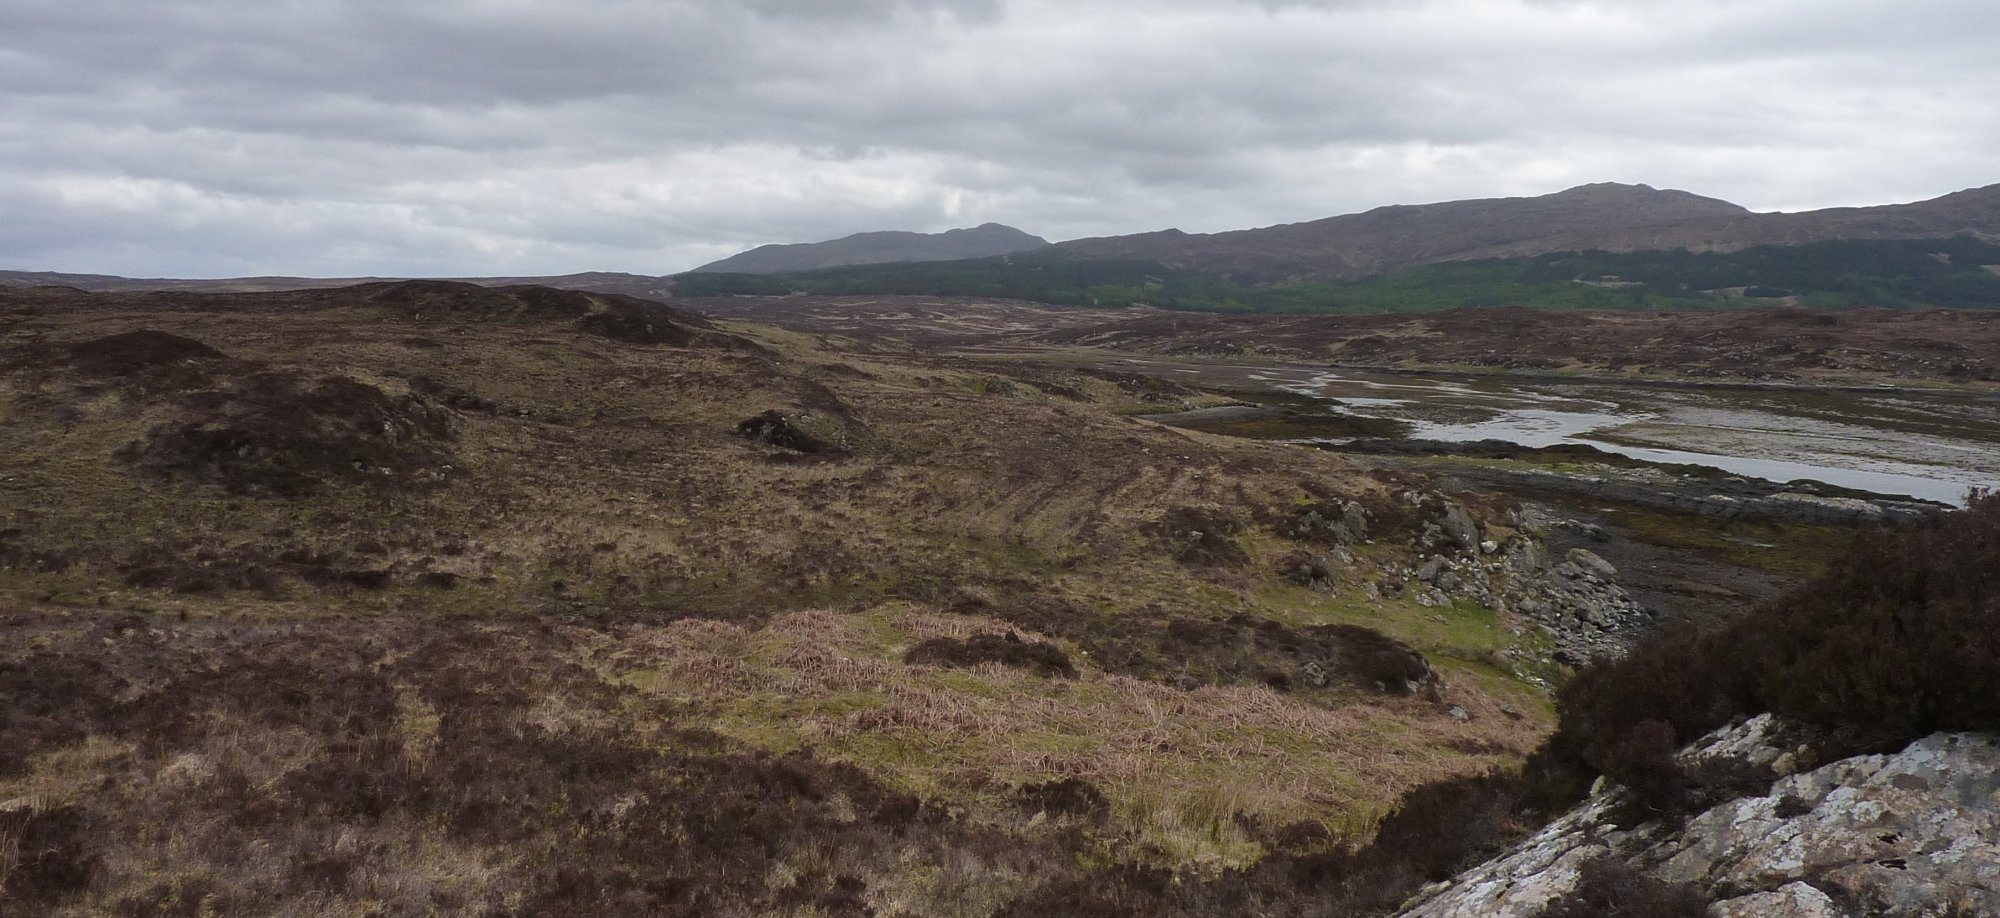 Looking ahead to the head of Loch Eishort and the river crossing that could cause me problems